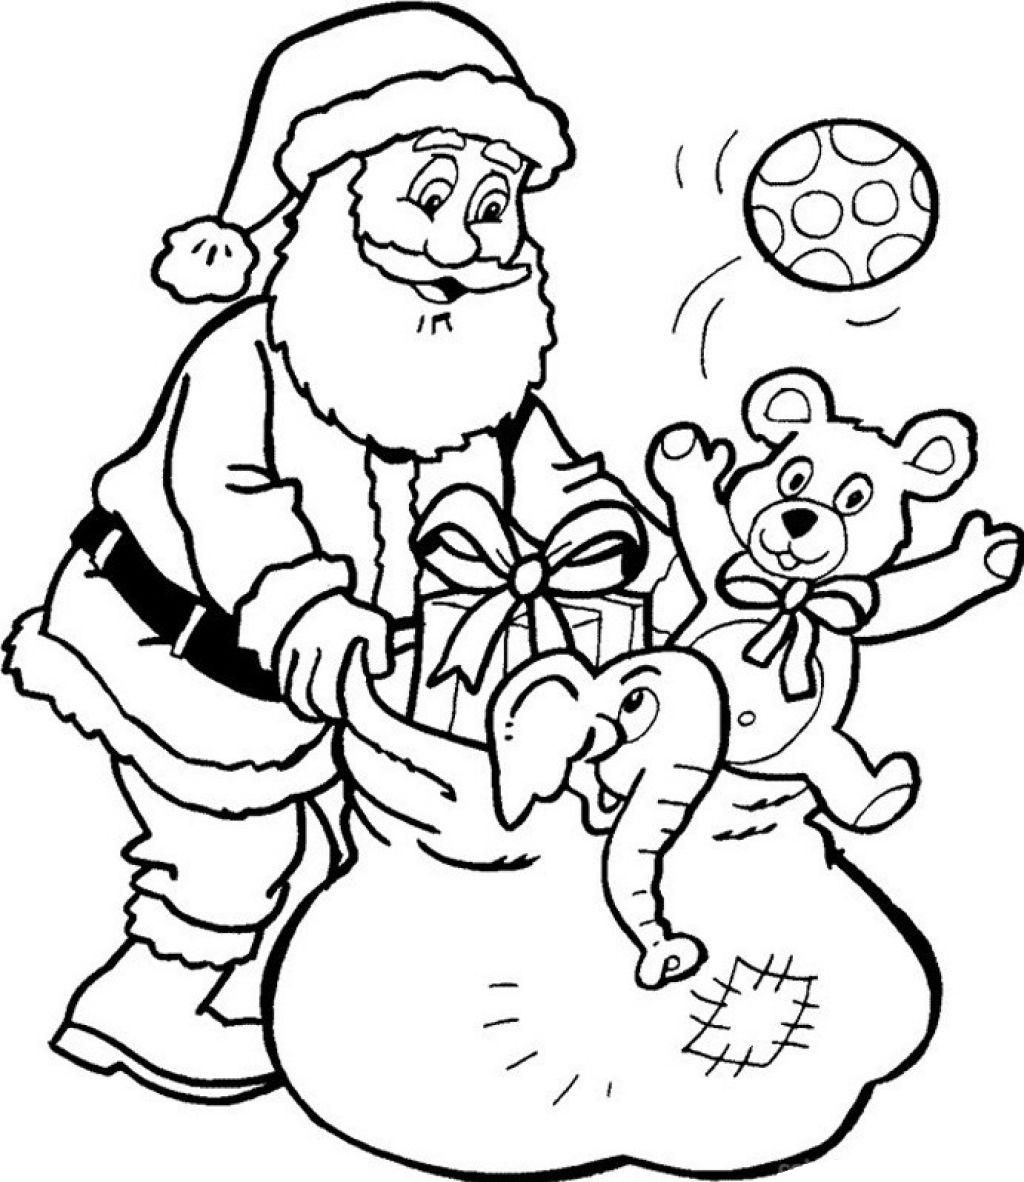 Christmas Santa Claus Coloring Pages 34 Free Printable Coloringsanta Colouring